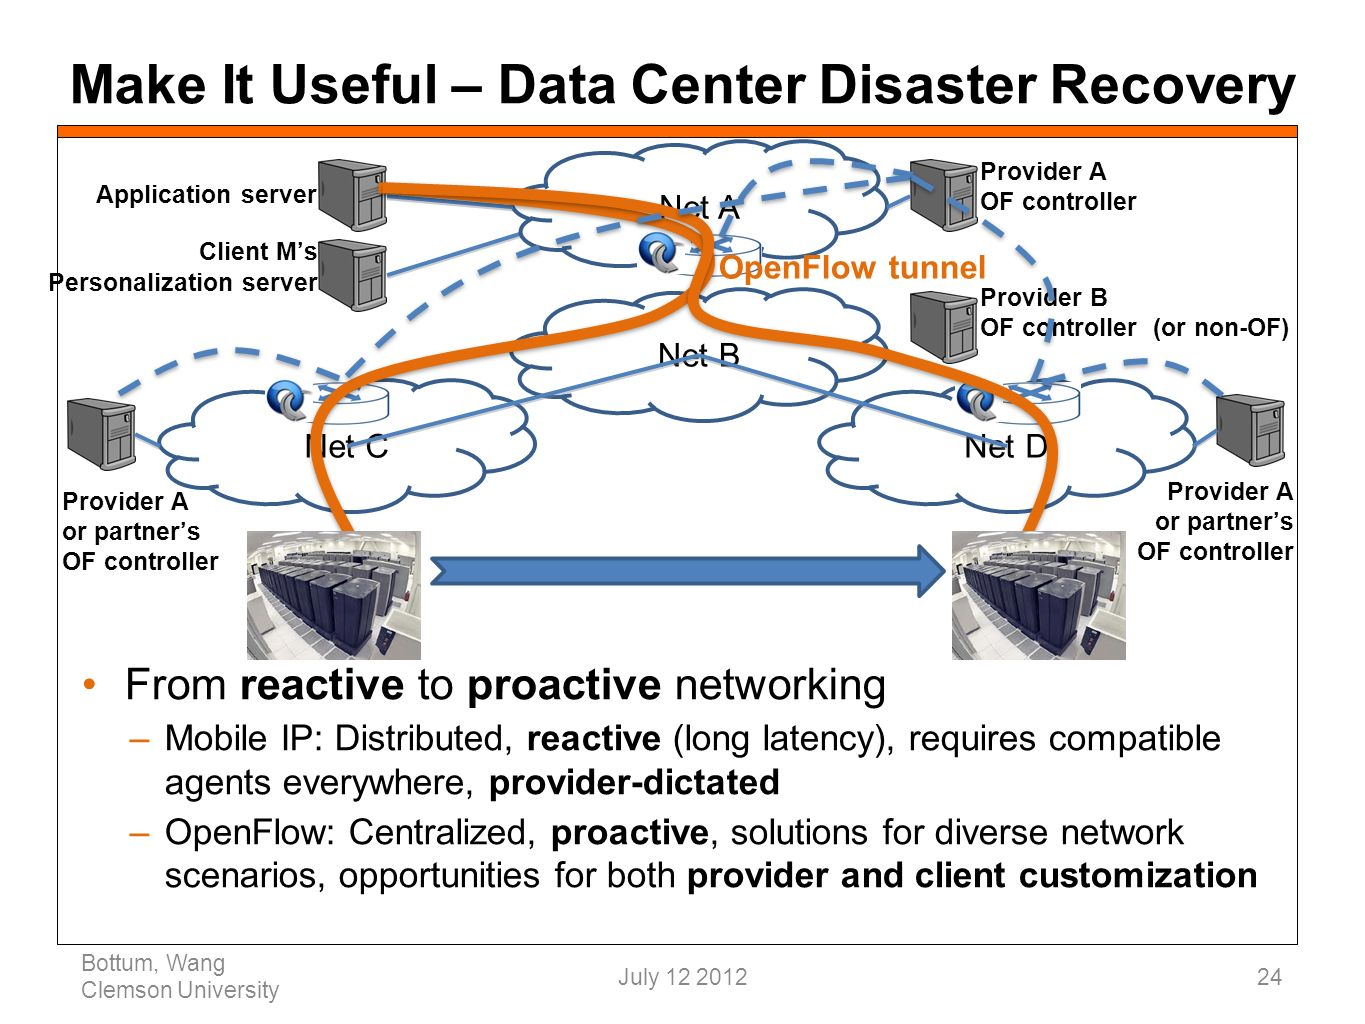 Make It Useful – Data Center Disaster Recovery Bottum, Wang Clemson University 24 Net CNet D Net A Net B Application server Client M Provider A OF controller Provider B OF controller (or non-OF) Provider A or partners OF controller Provider A or partners OF controller Client Ms Personalization server From reactive to proactive networking –Mobile IP: Distributed, reactive (long latency), requires compatible agents everywhere, provider-dictated –OpenFlow: Centralized, proactive, solutions for diverse network scenarios, opportunities for both provider and client customization OpenFlow tunnel July 12 2012